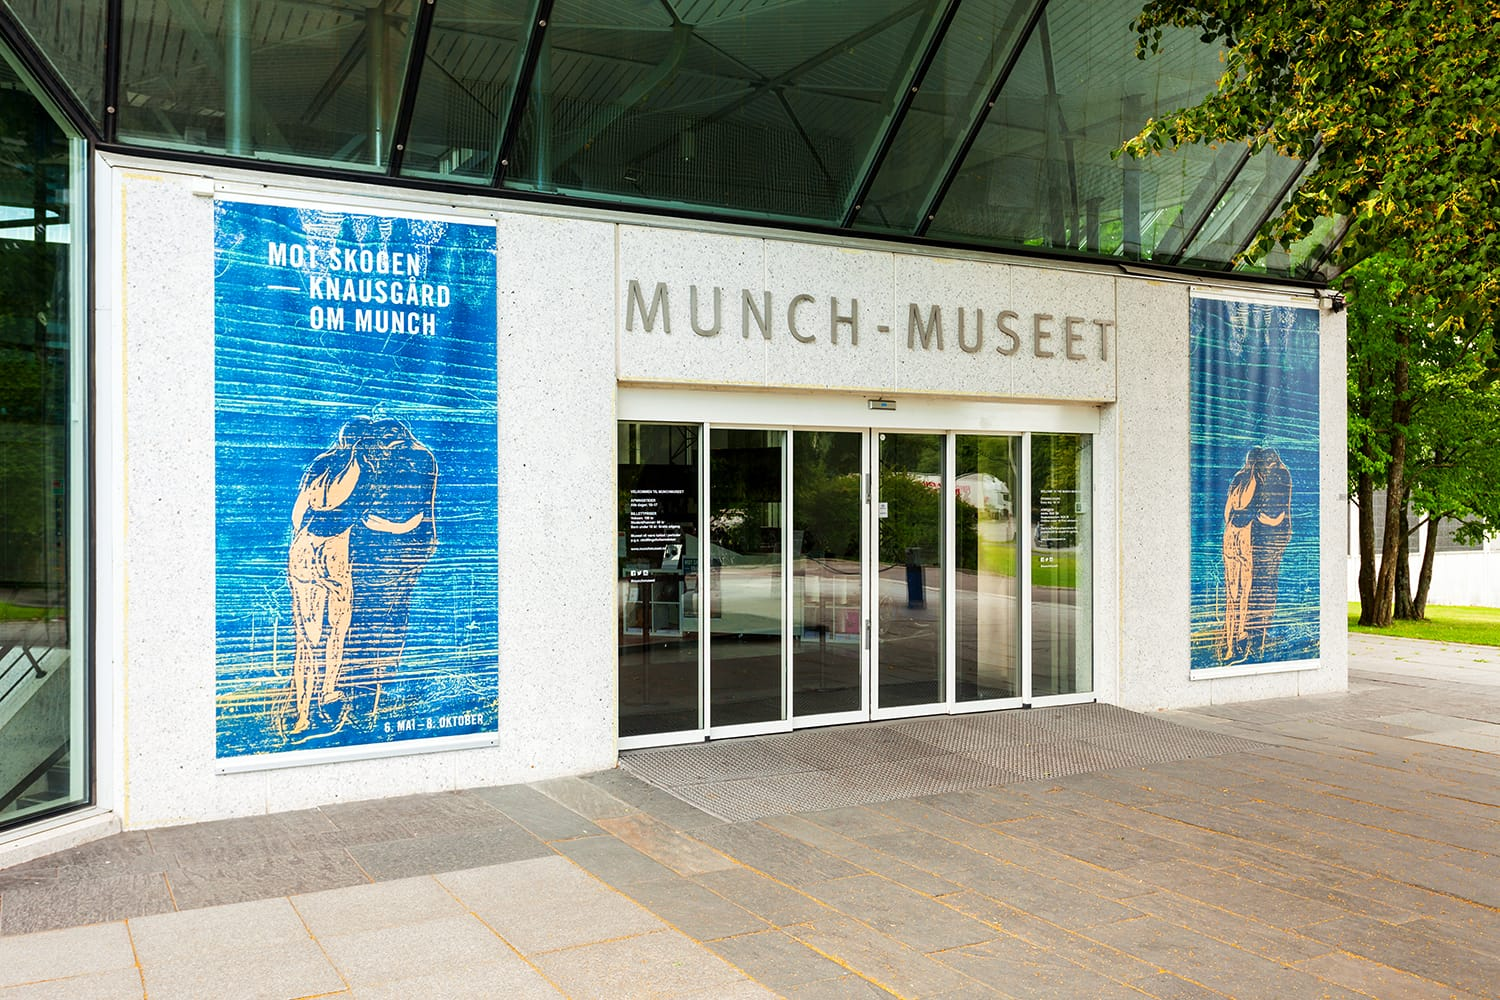 Munch Museum in Oslo, Norway